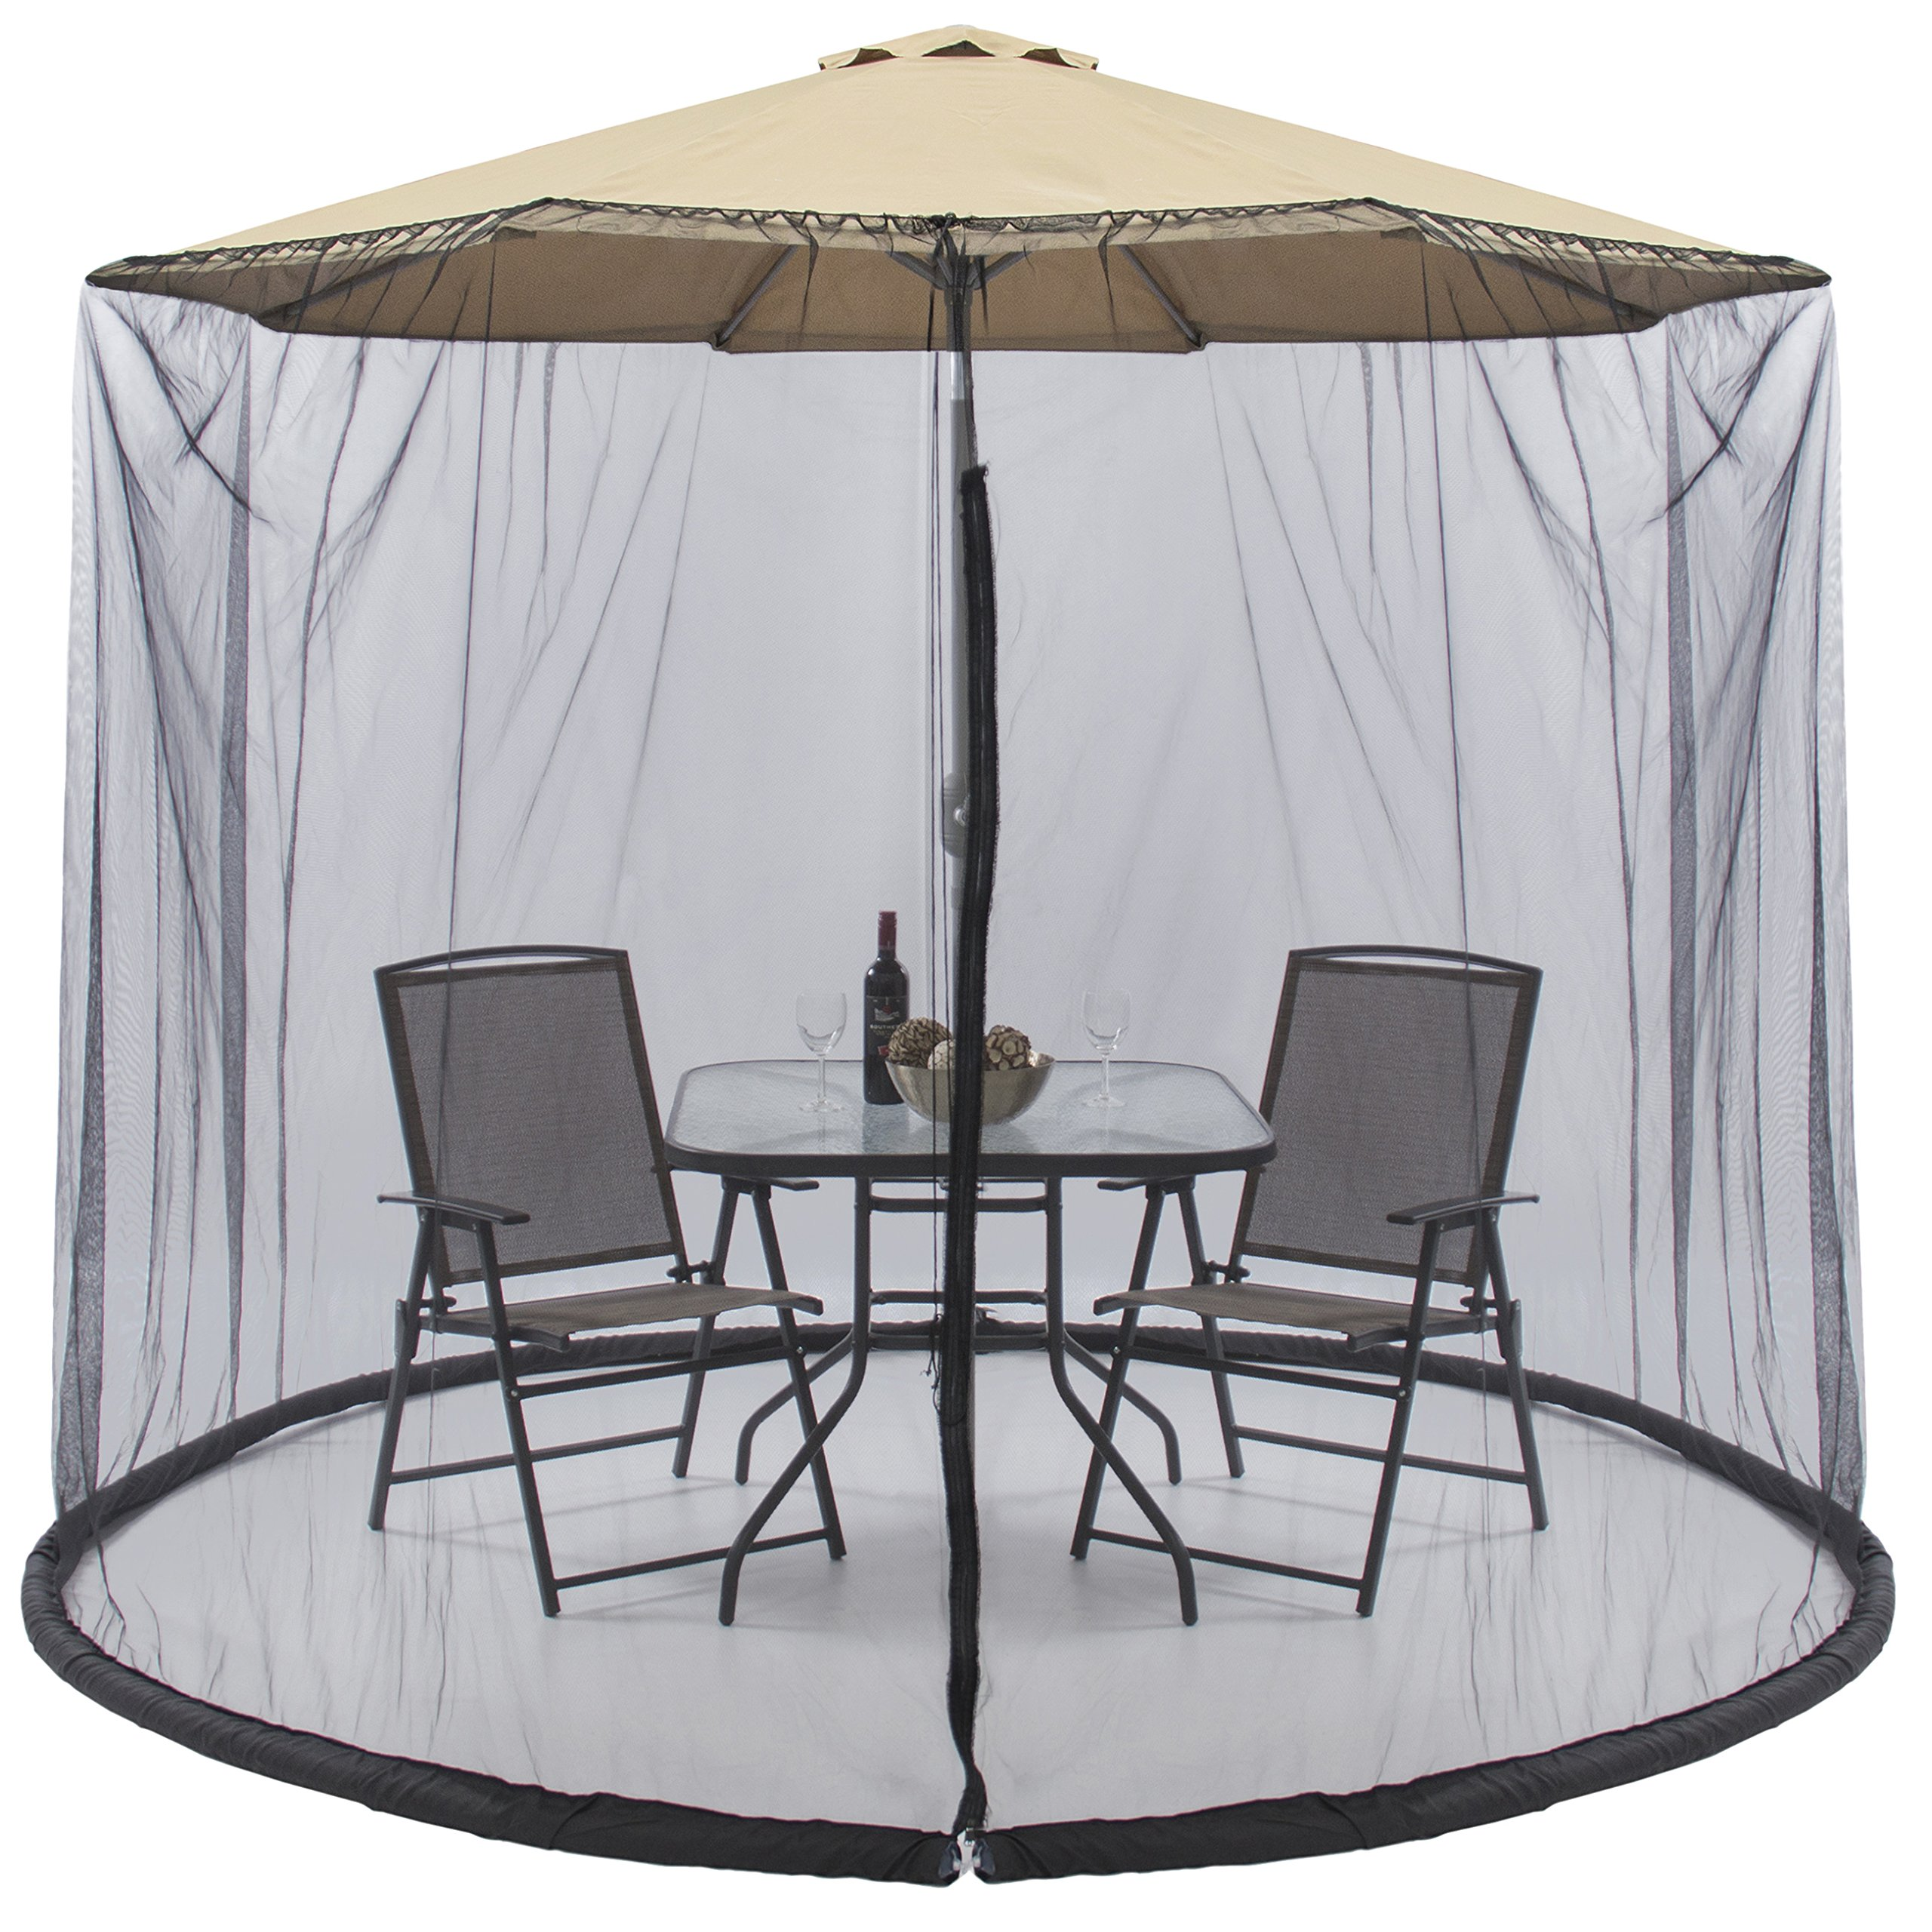 Best Choice Products 9ft Patio Umbrella Bug Screen w/Zipper Door. Polyester Netting - Black